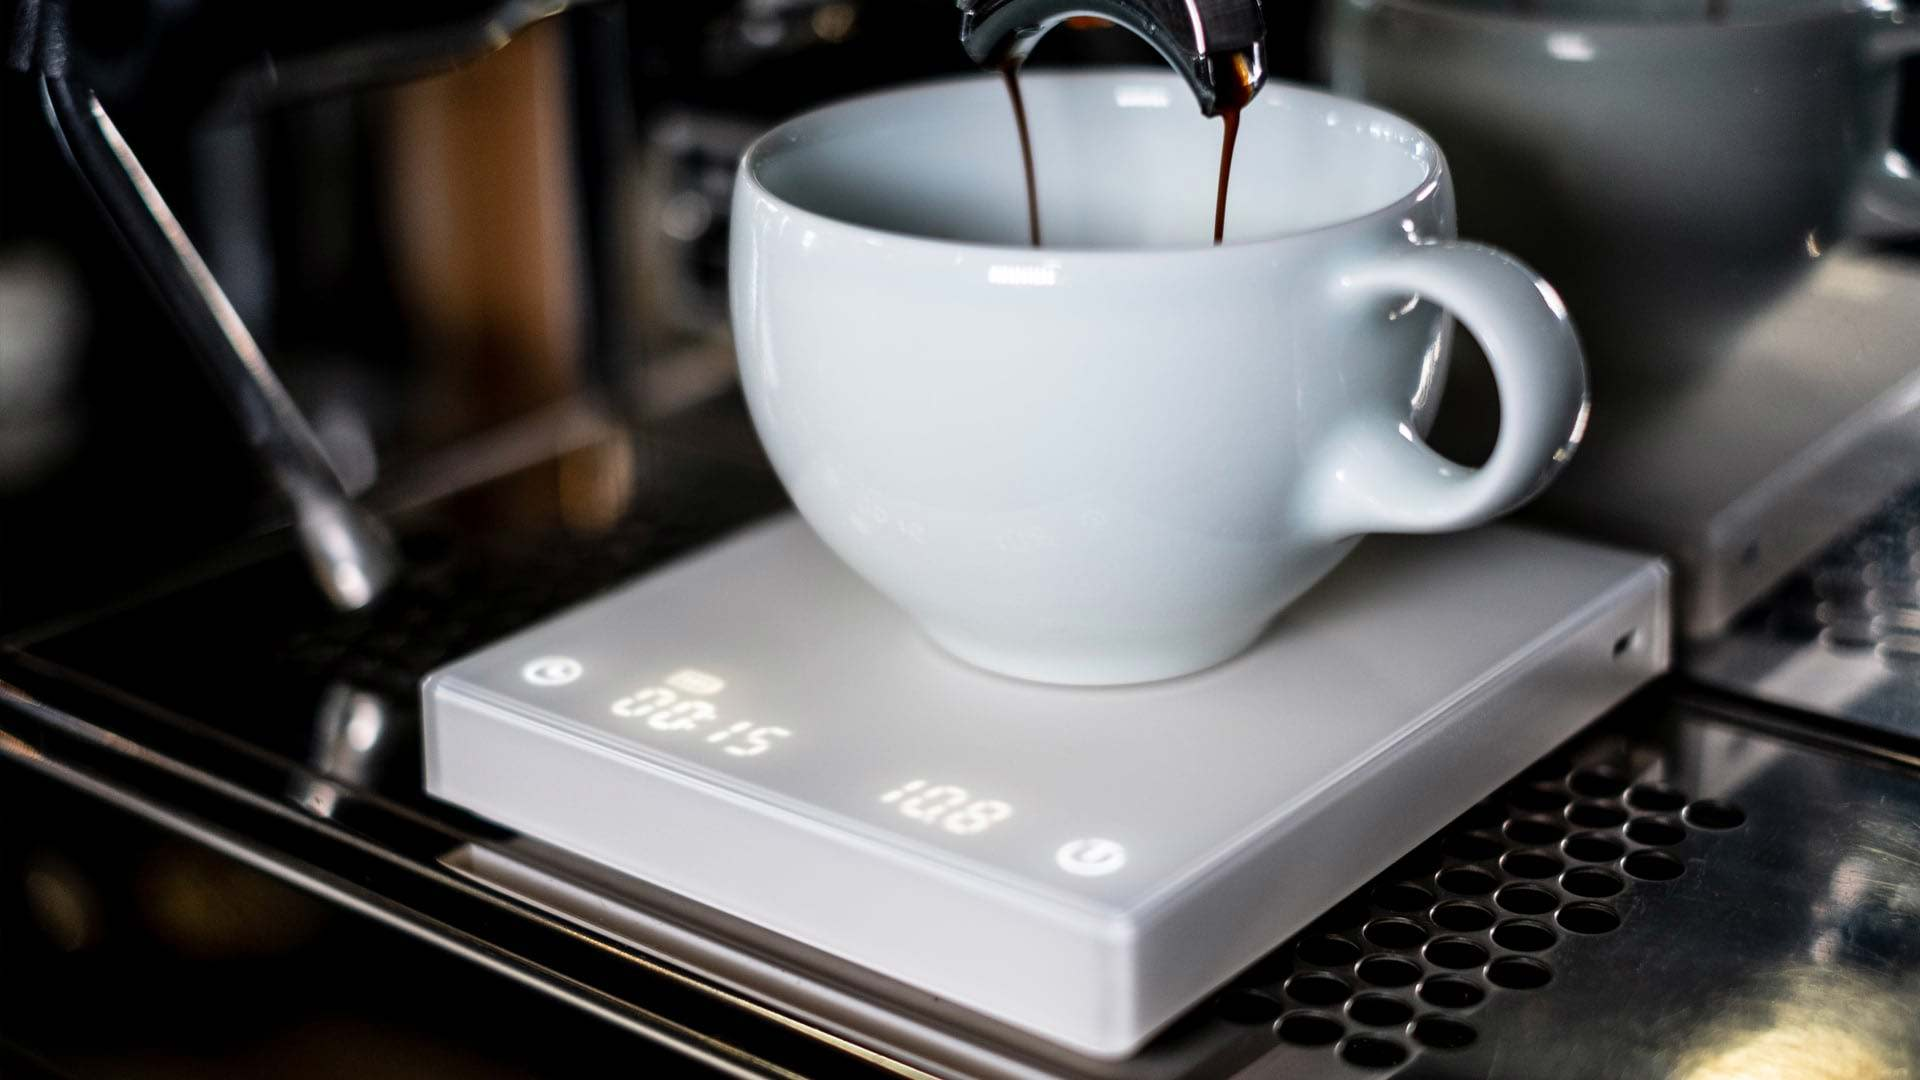 Timemore scale under cup